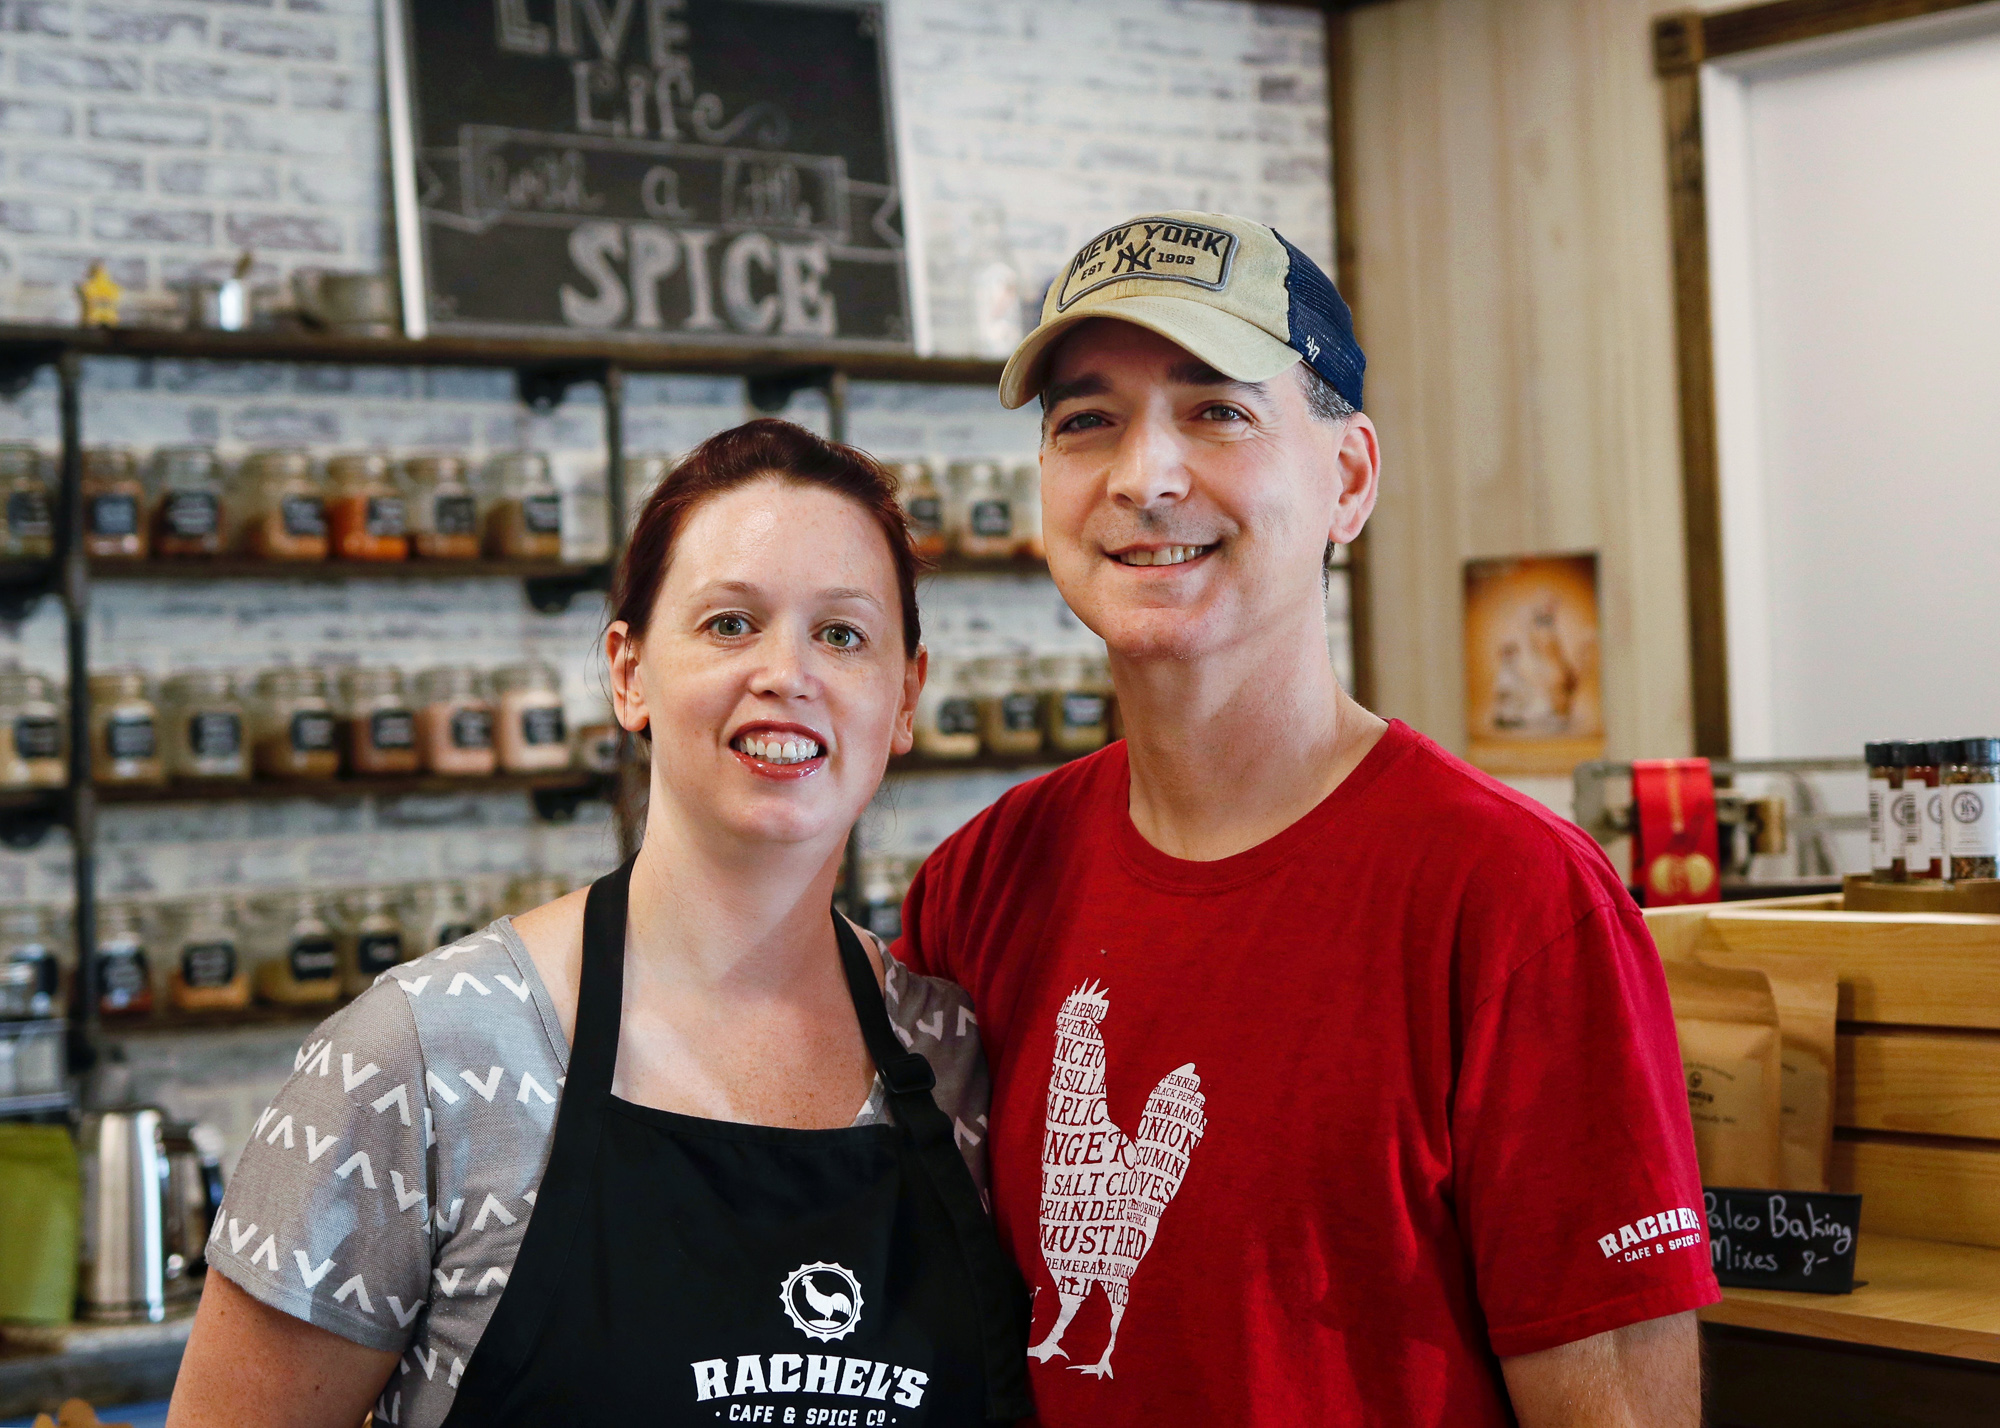 Rachel and Dave Dutra - Rachel's Cafe and Spice Co